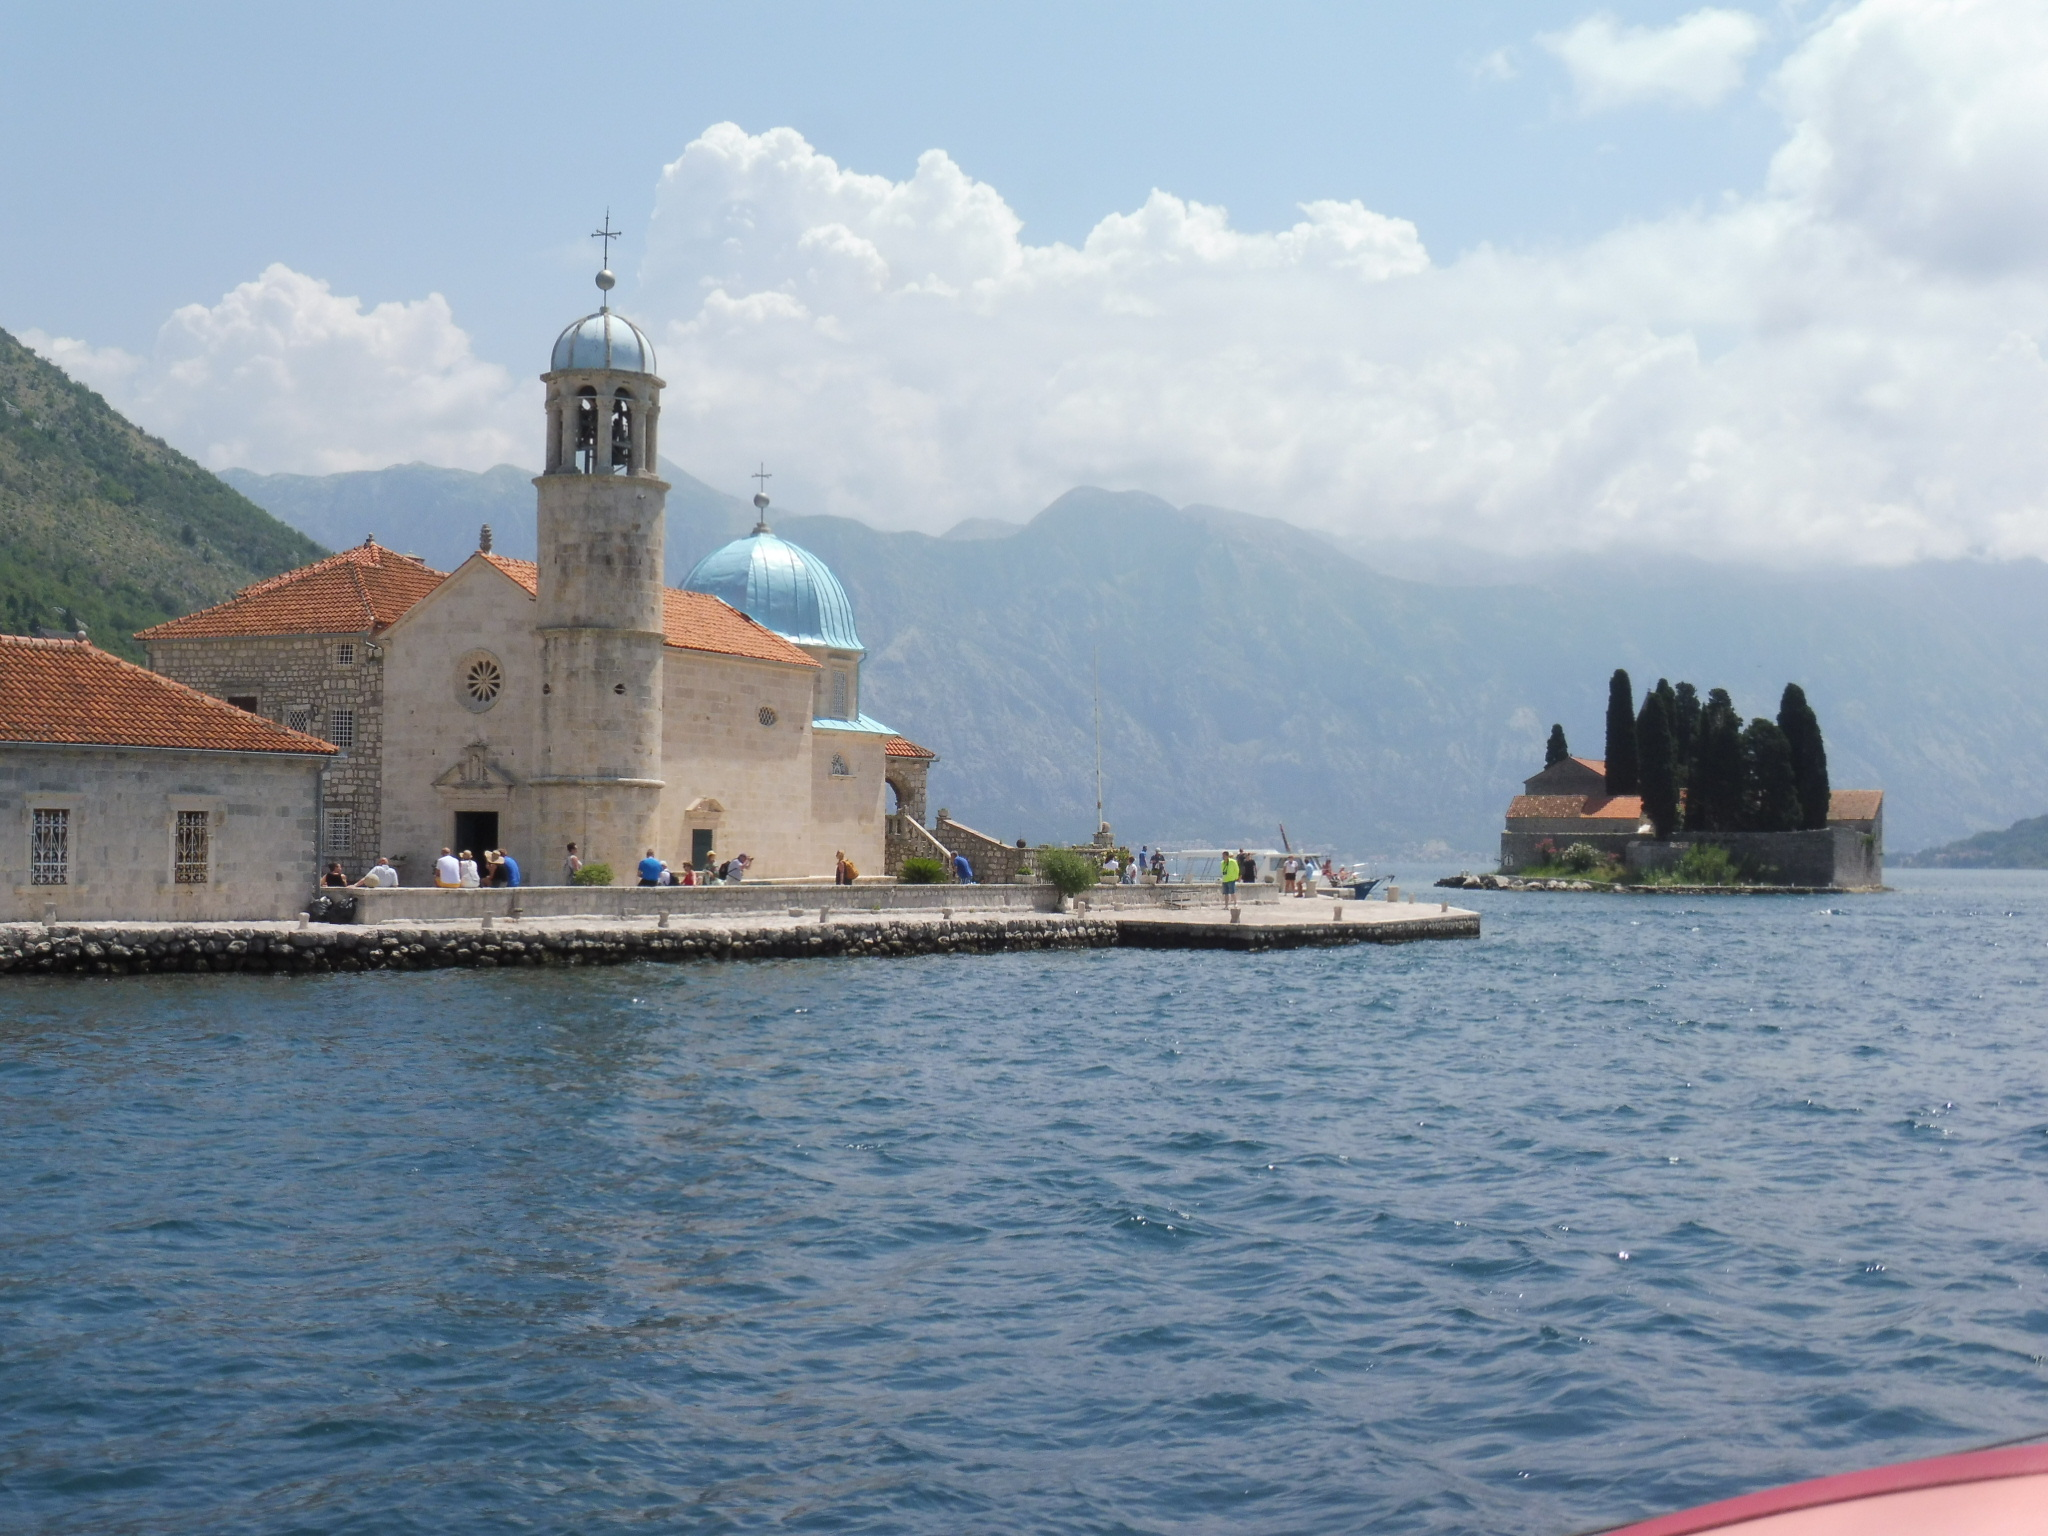 Islands in Kotor